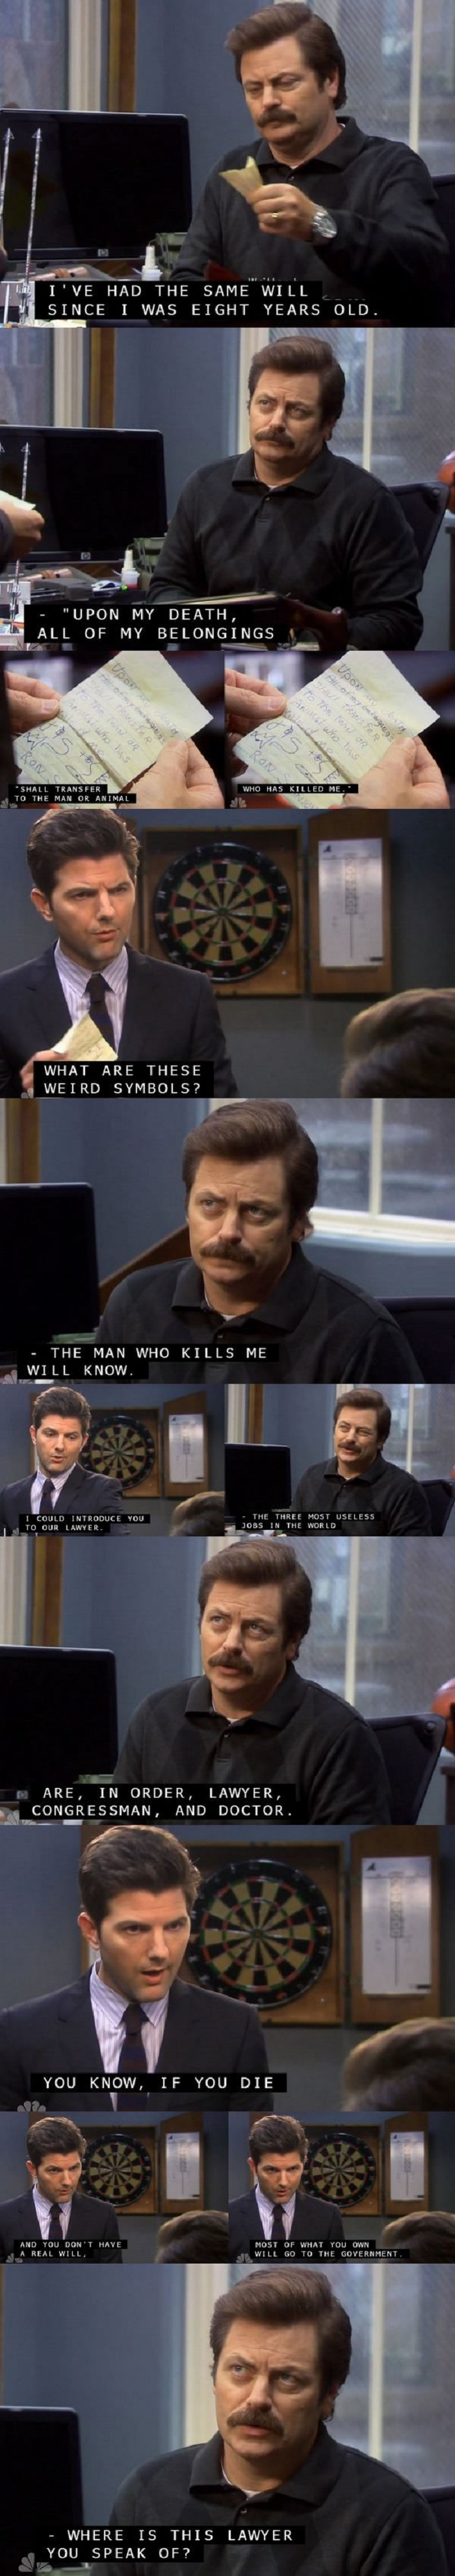 Writing a will, Ron style